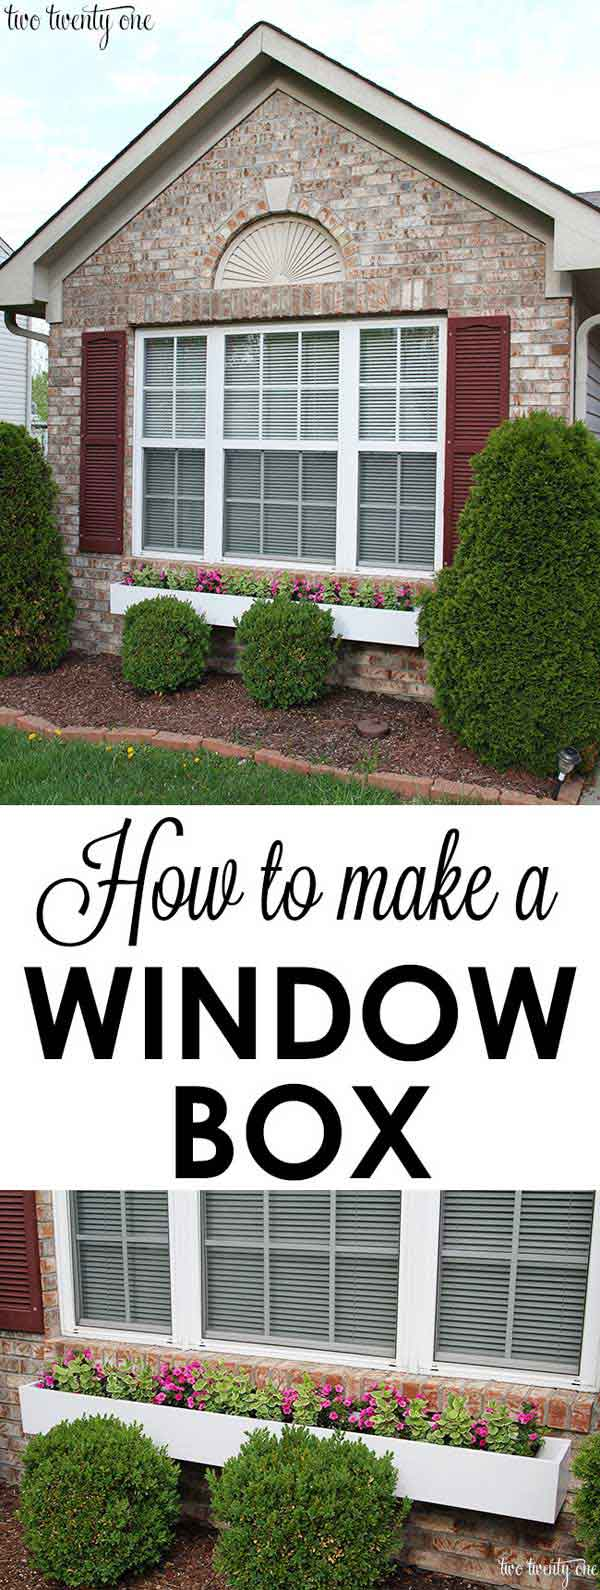 A window box is a simple addition, but it can brighten up your front yard considerably. Via Two Twenty One